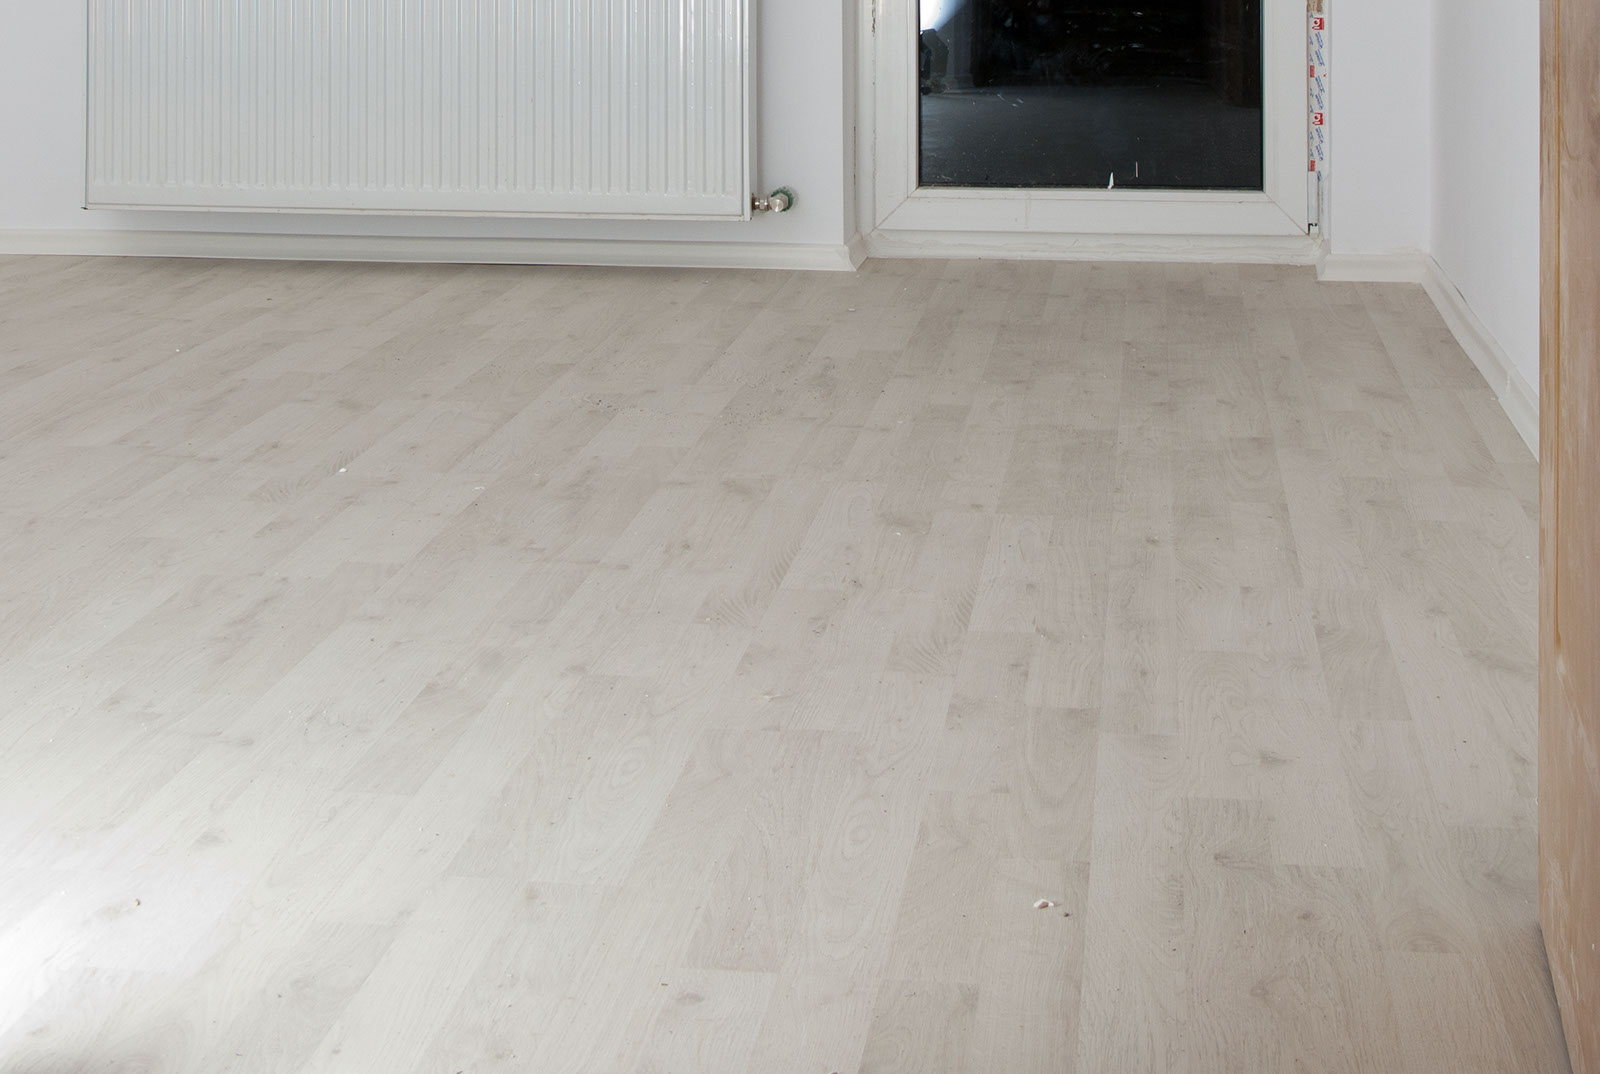 How To Lay Laminate Flooring Around Doors Ehowcom | Apps Directories